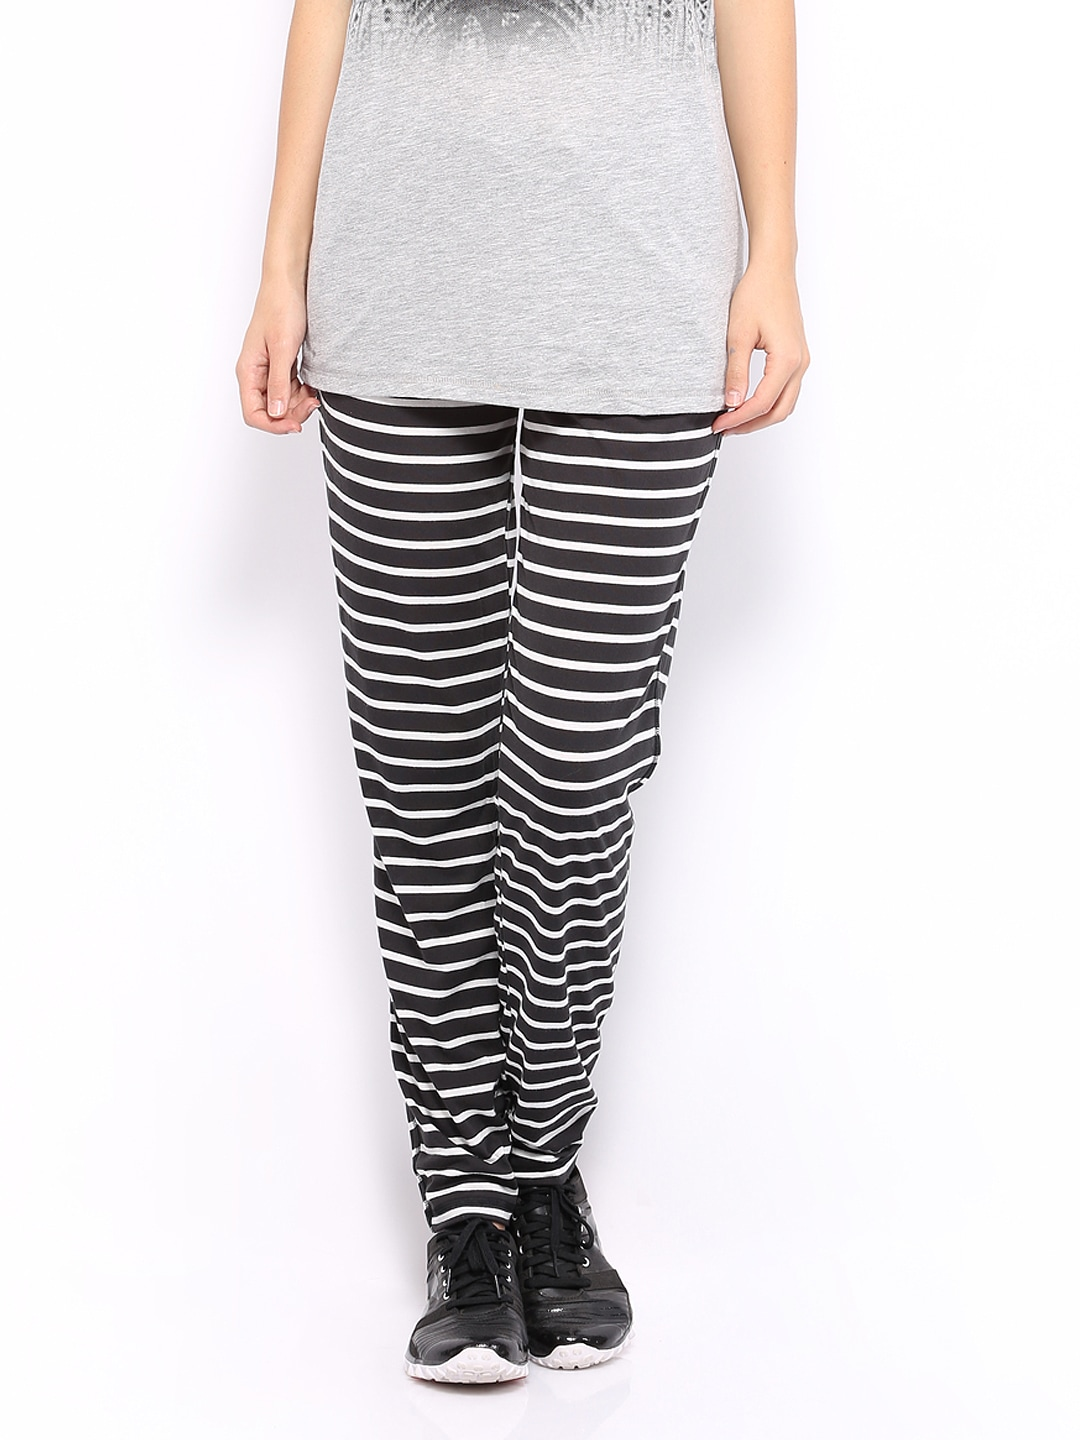 Buy Reebok Women Black & White Striped Yoga Pants (multicolor ...